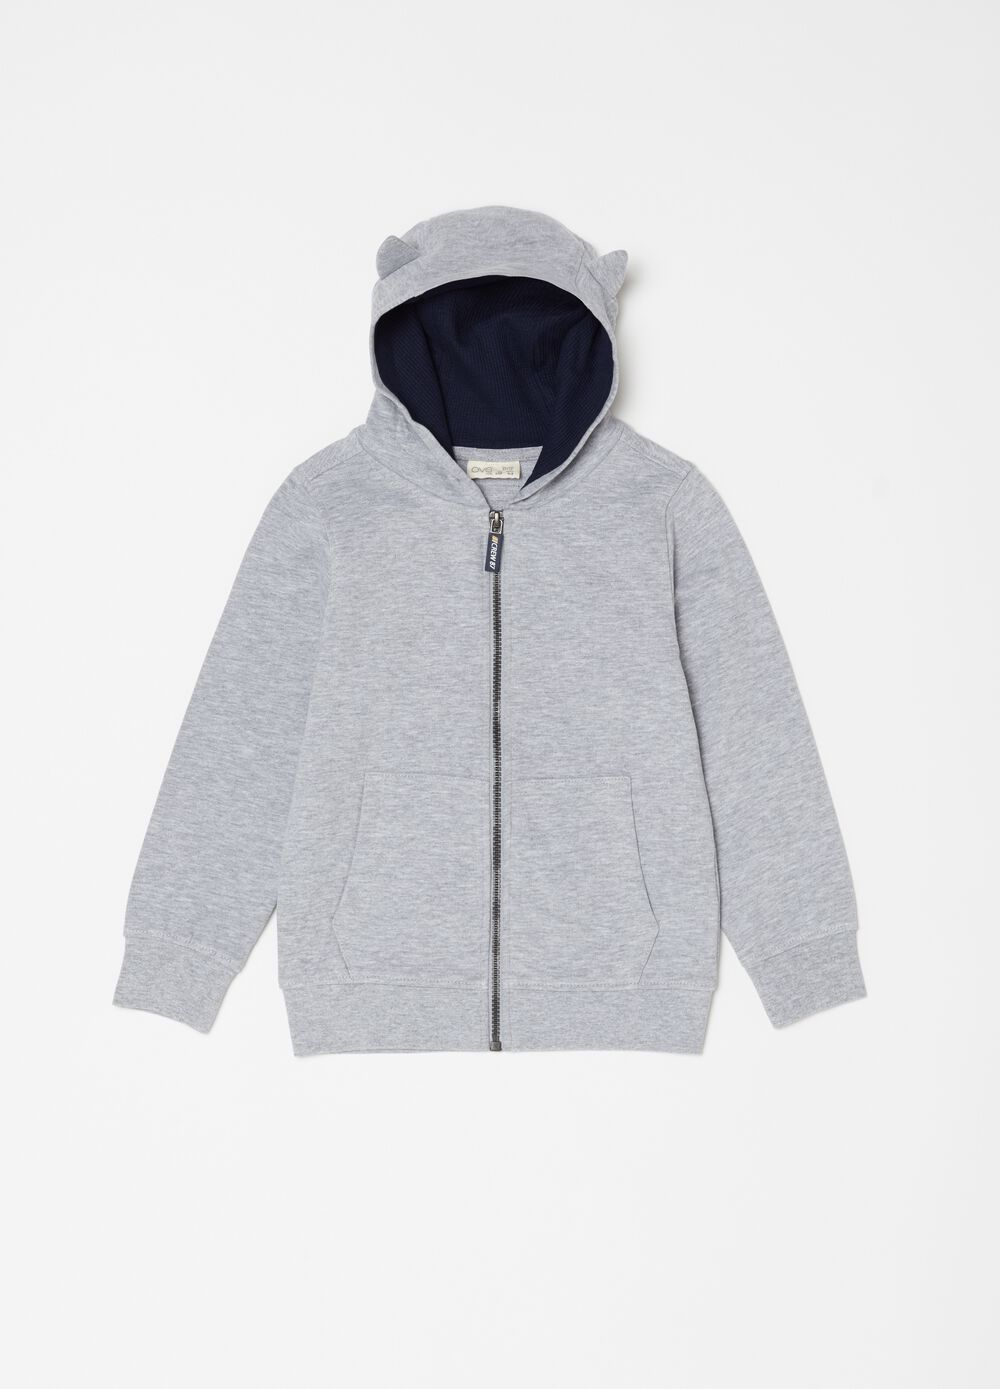 Mélange sweatshirt with full-zip pockets